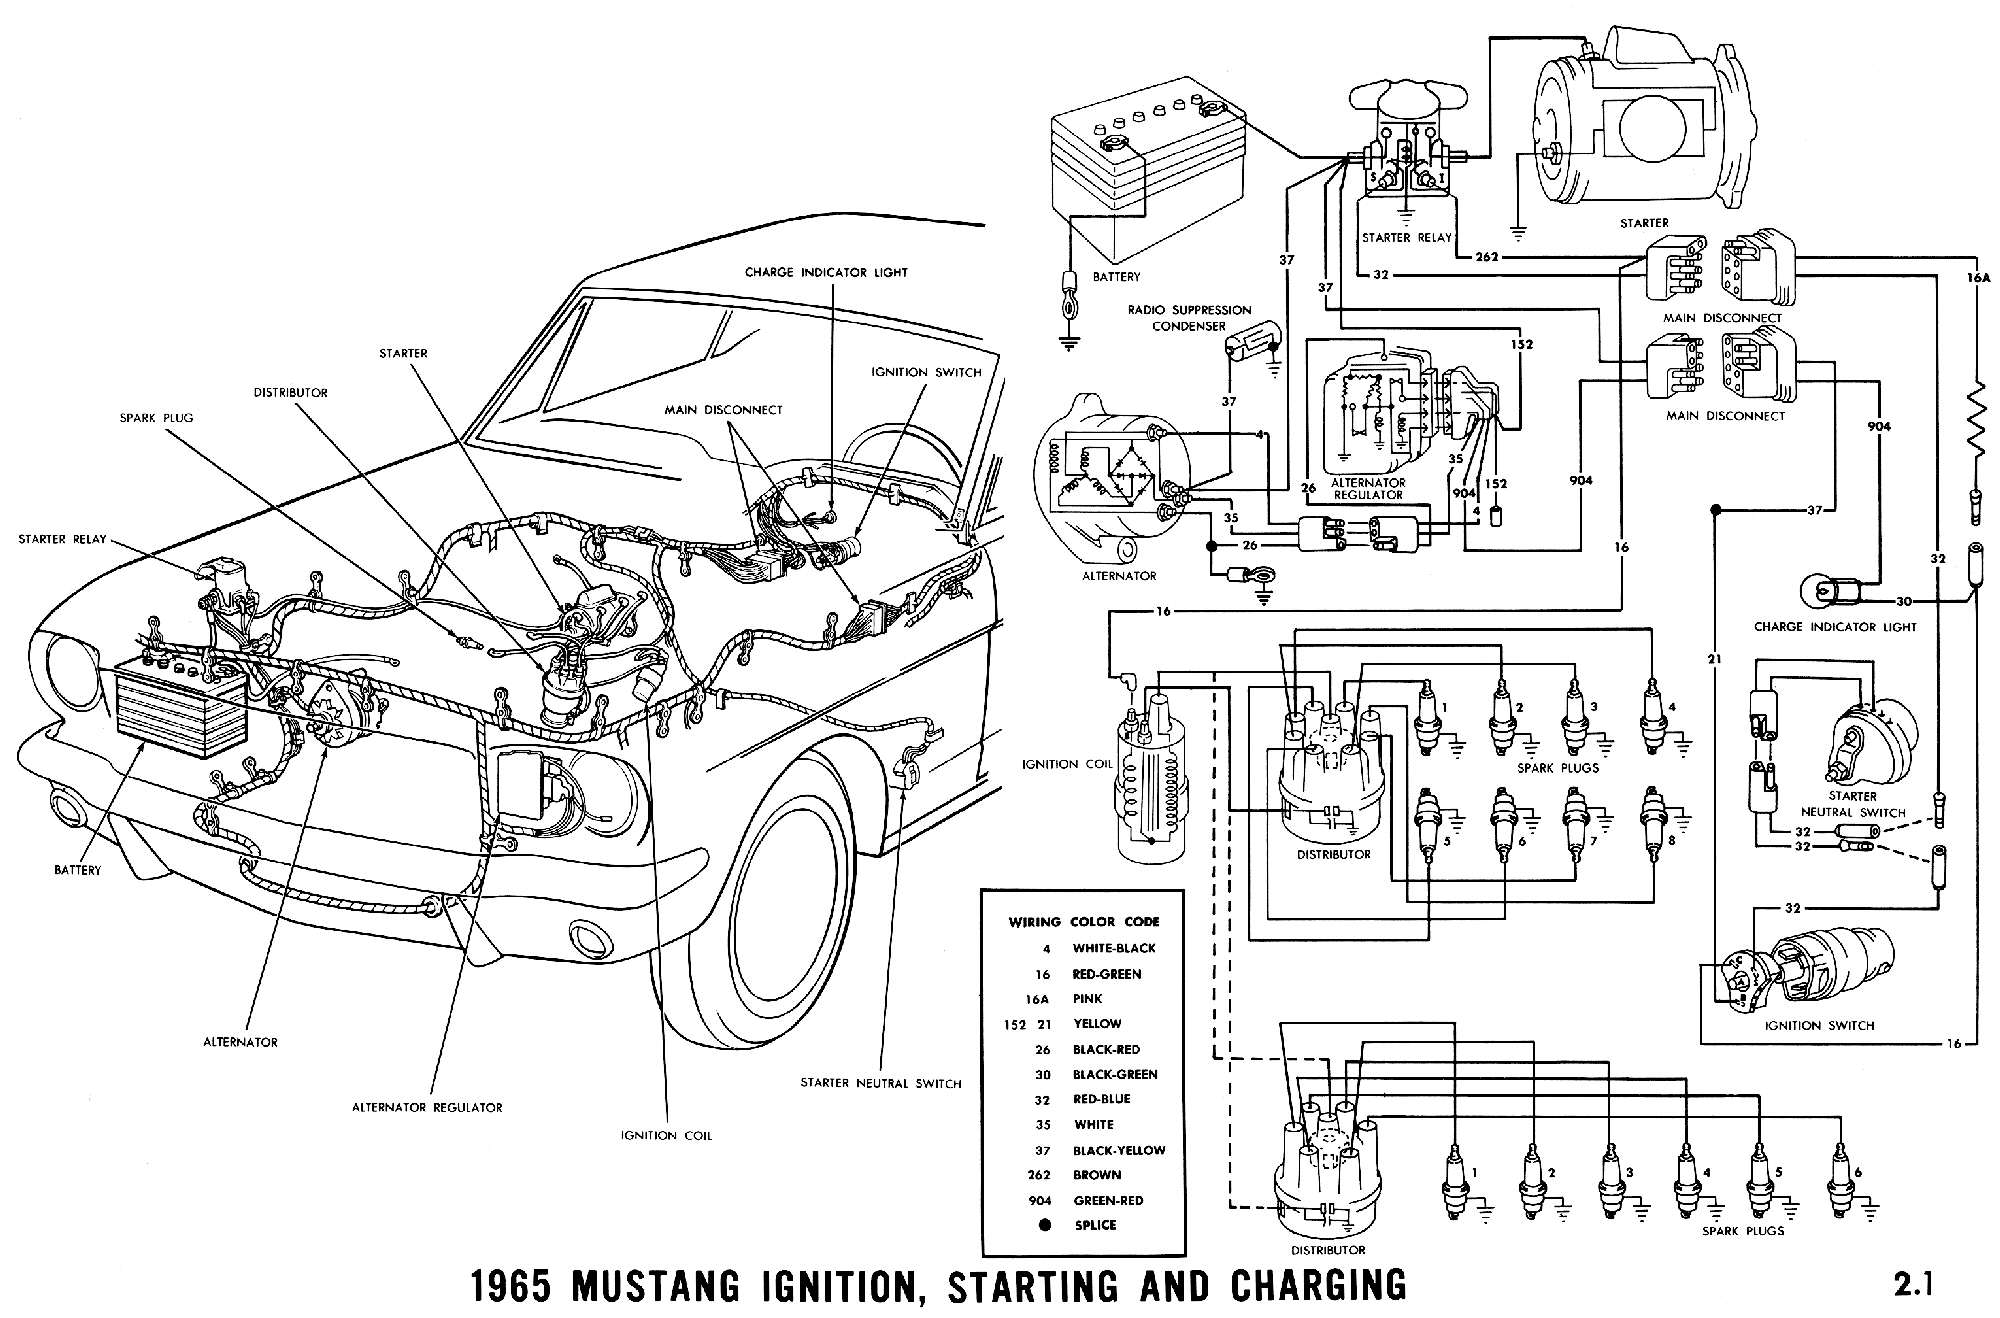 1965c 1965 mustang wiring diagrams average joe restoration 1969 mustang wiring harness diagram at alyssarenee.co